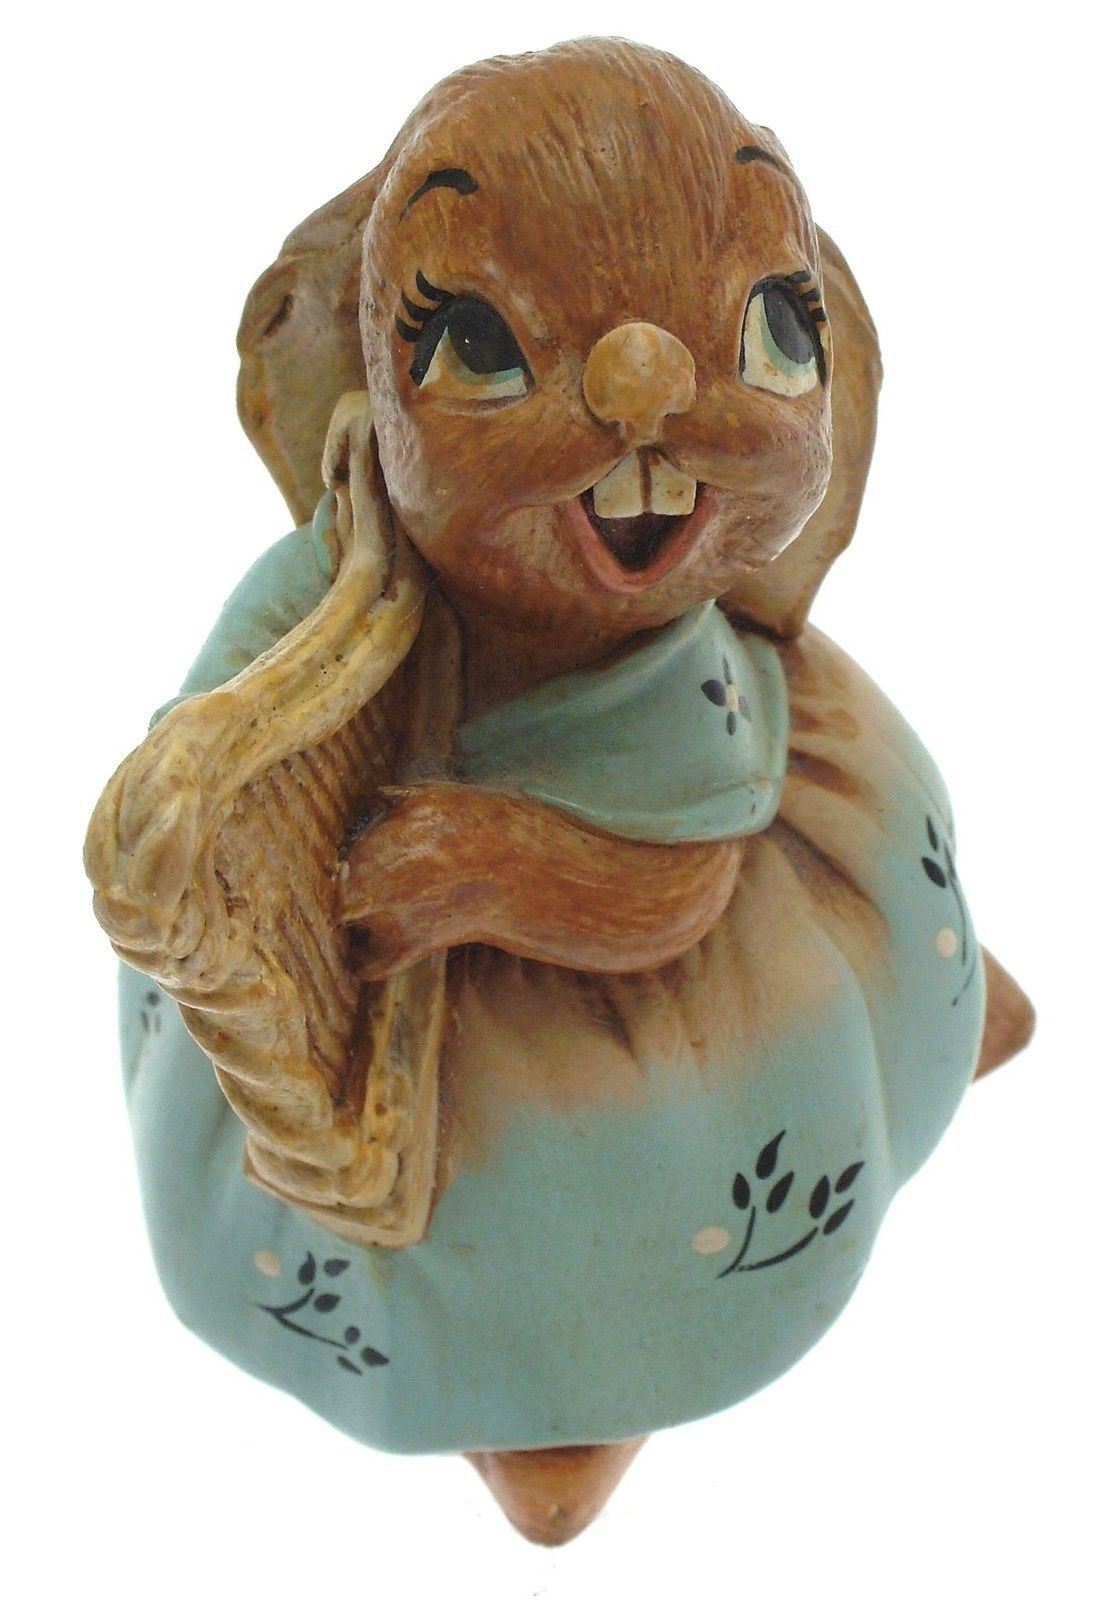 Pendefin Megan the Harp cute rabbit sculpture - Vintage piece